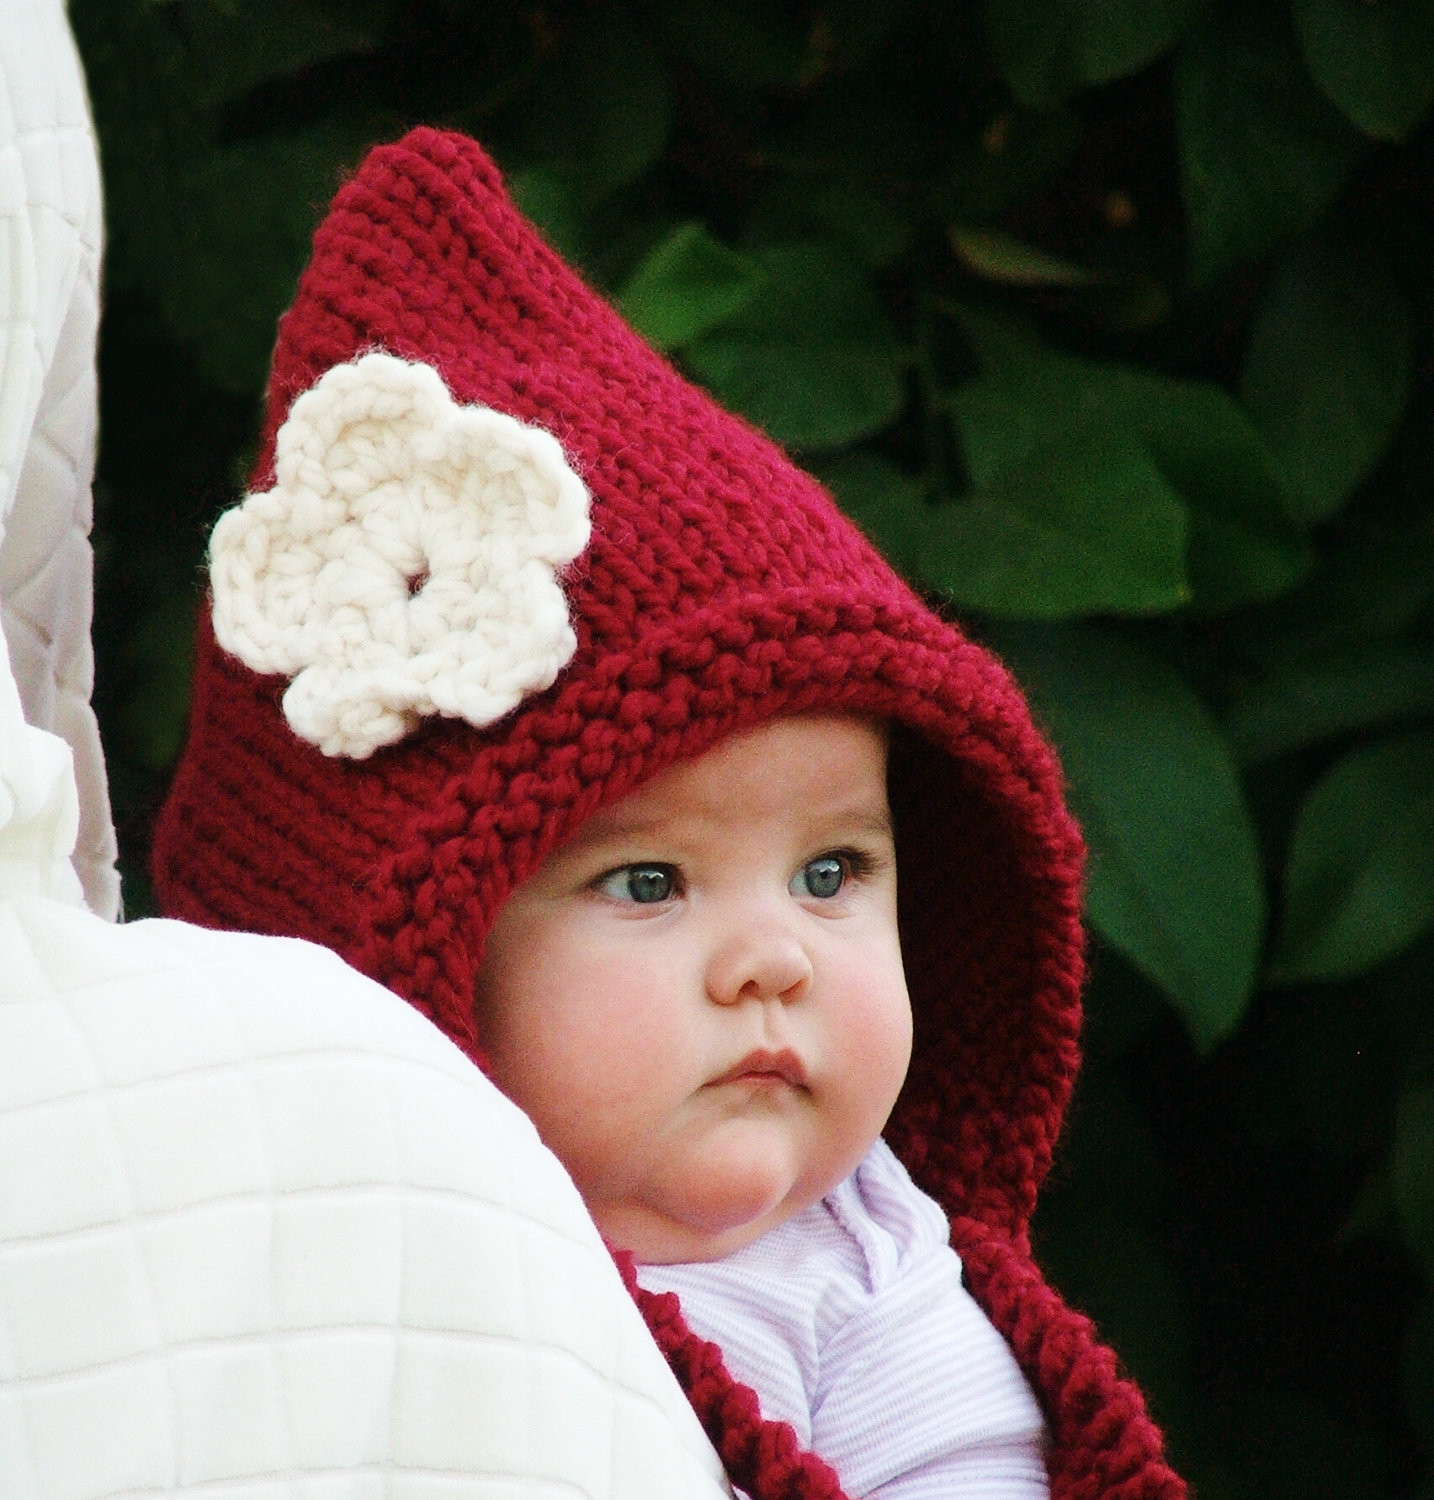 Knitted Baby Hats Beautiful Baby Pixie Hat Red Riding Hood Knit Baby Hat Newborn by Of Awesome 41 Images Knitted Baby Hats